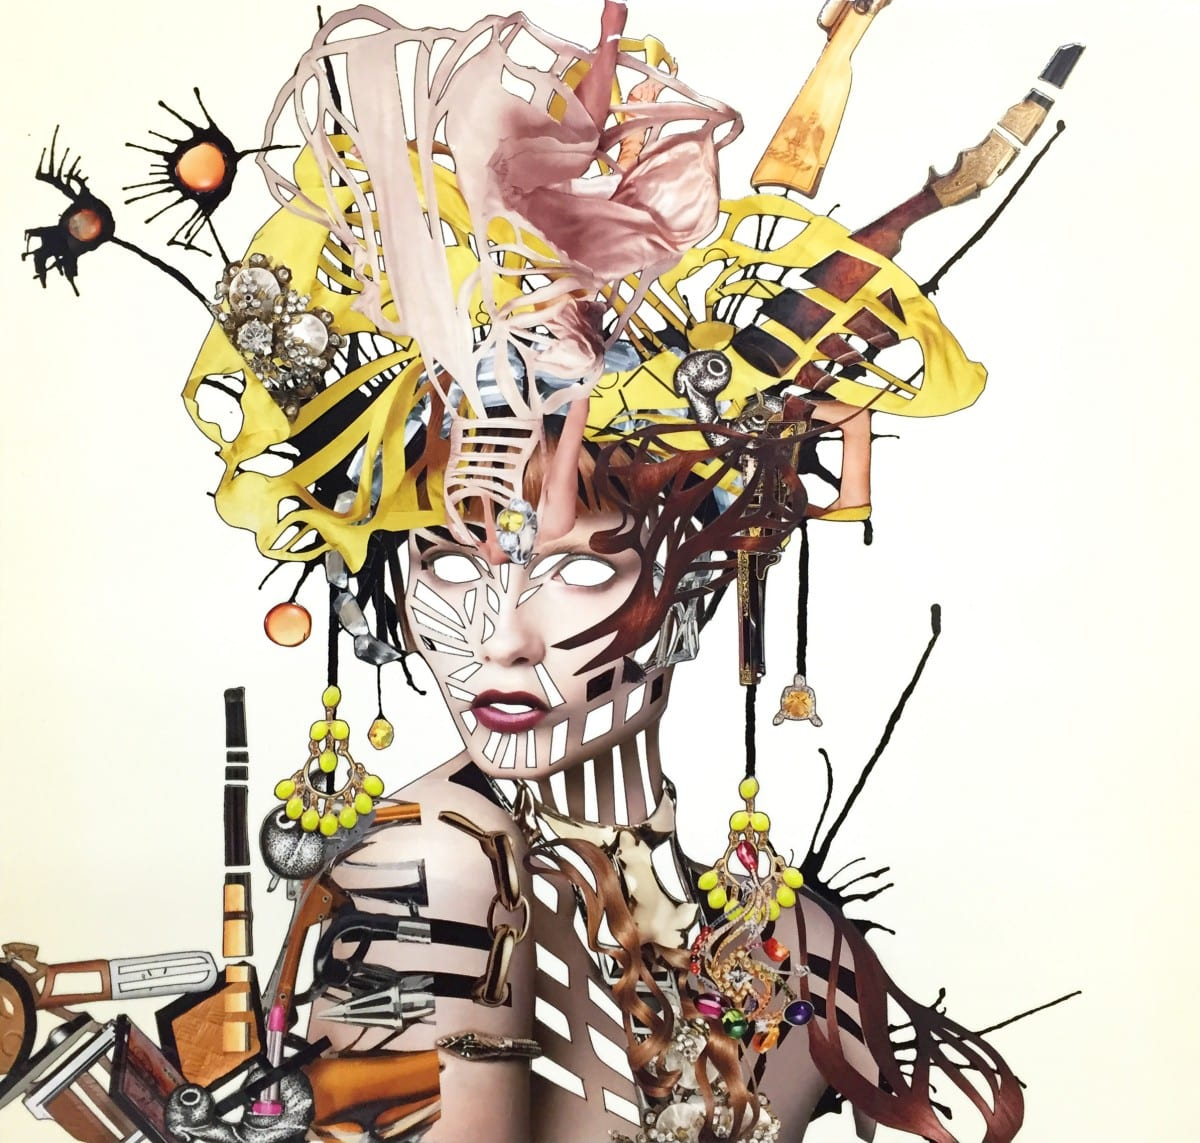 Debra Hampton_Nostalgic Head Huntress_2014_magazine cut out, archival prints, adhesive, ink, watercolor, and paper mounted on panel with varnish_16 x 16 in_40.5 x 40.5 cm_2278